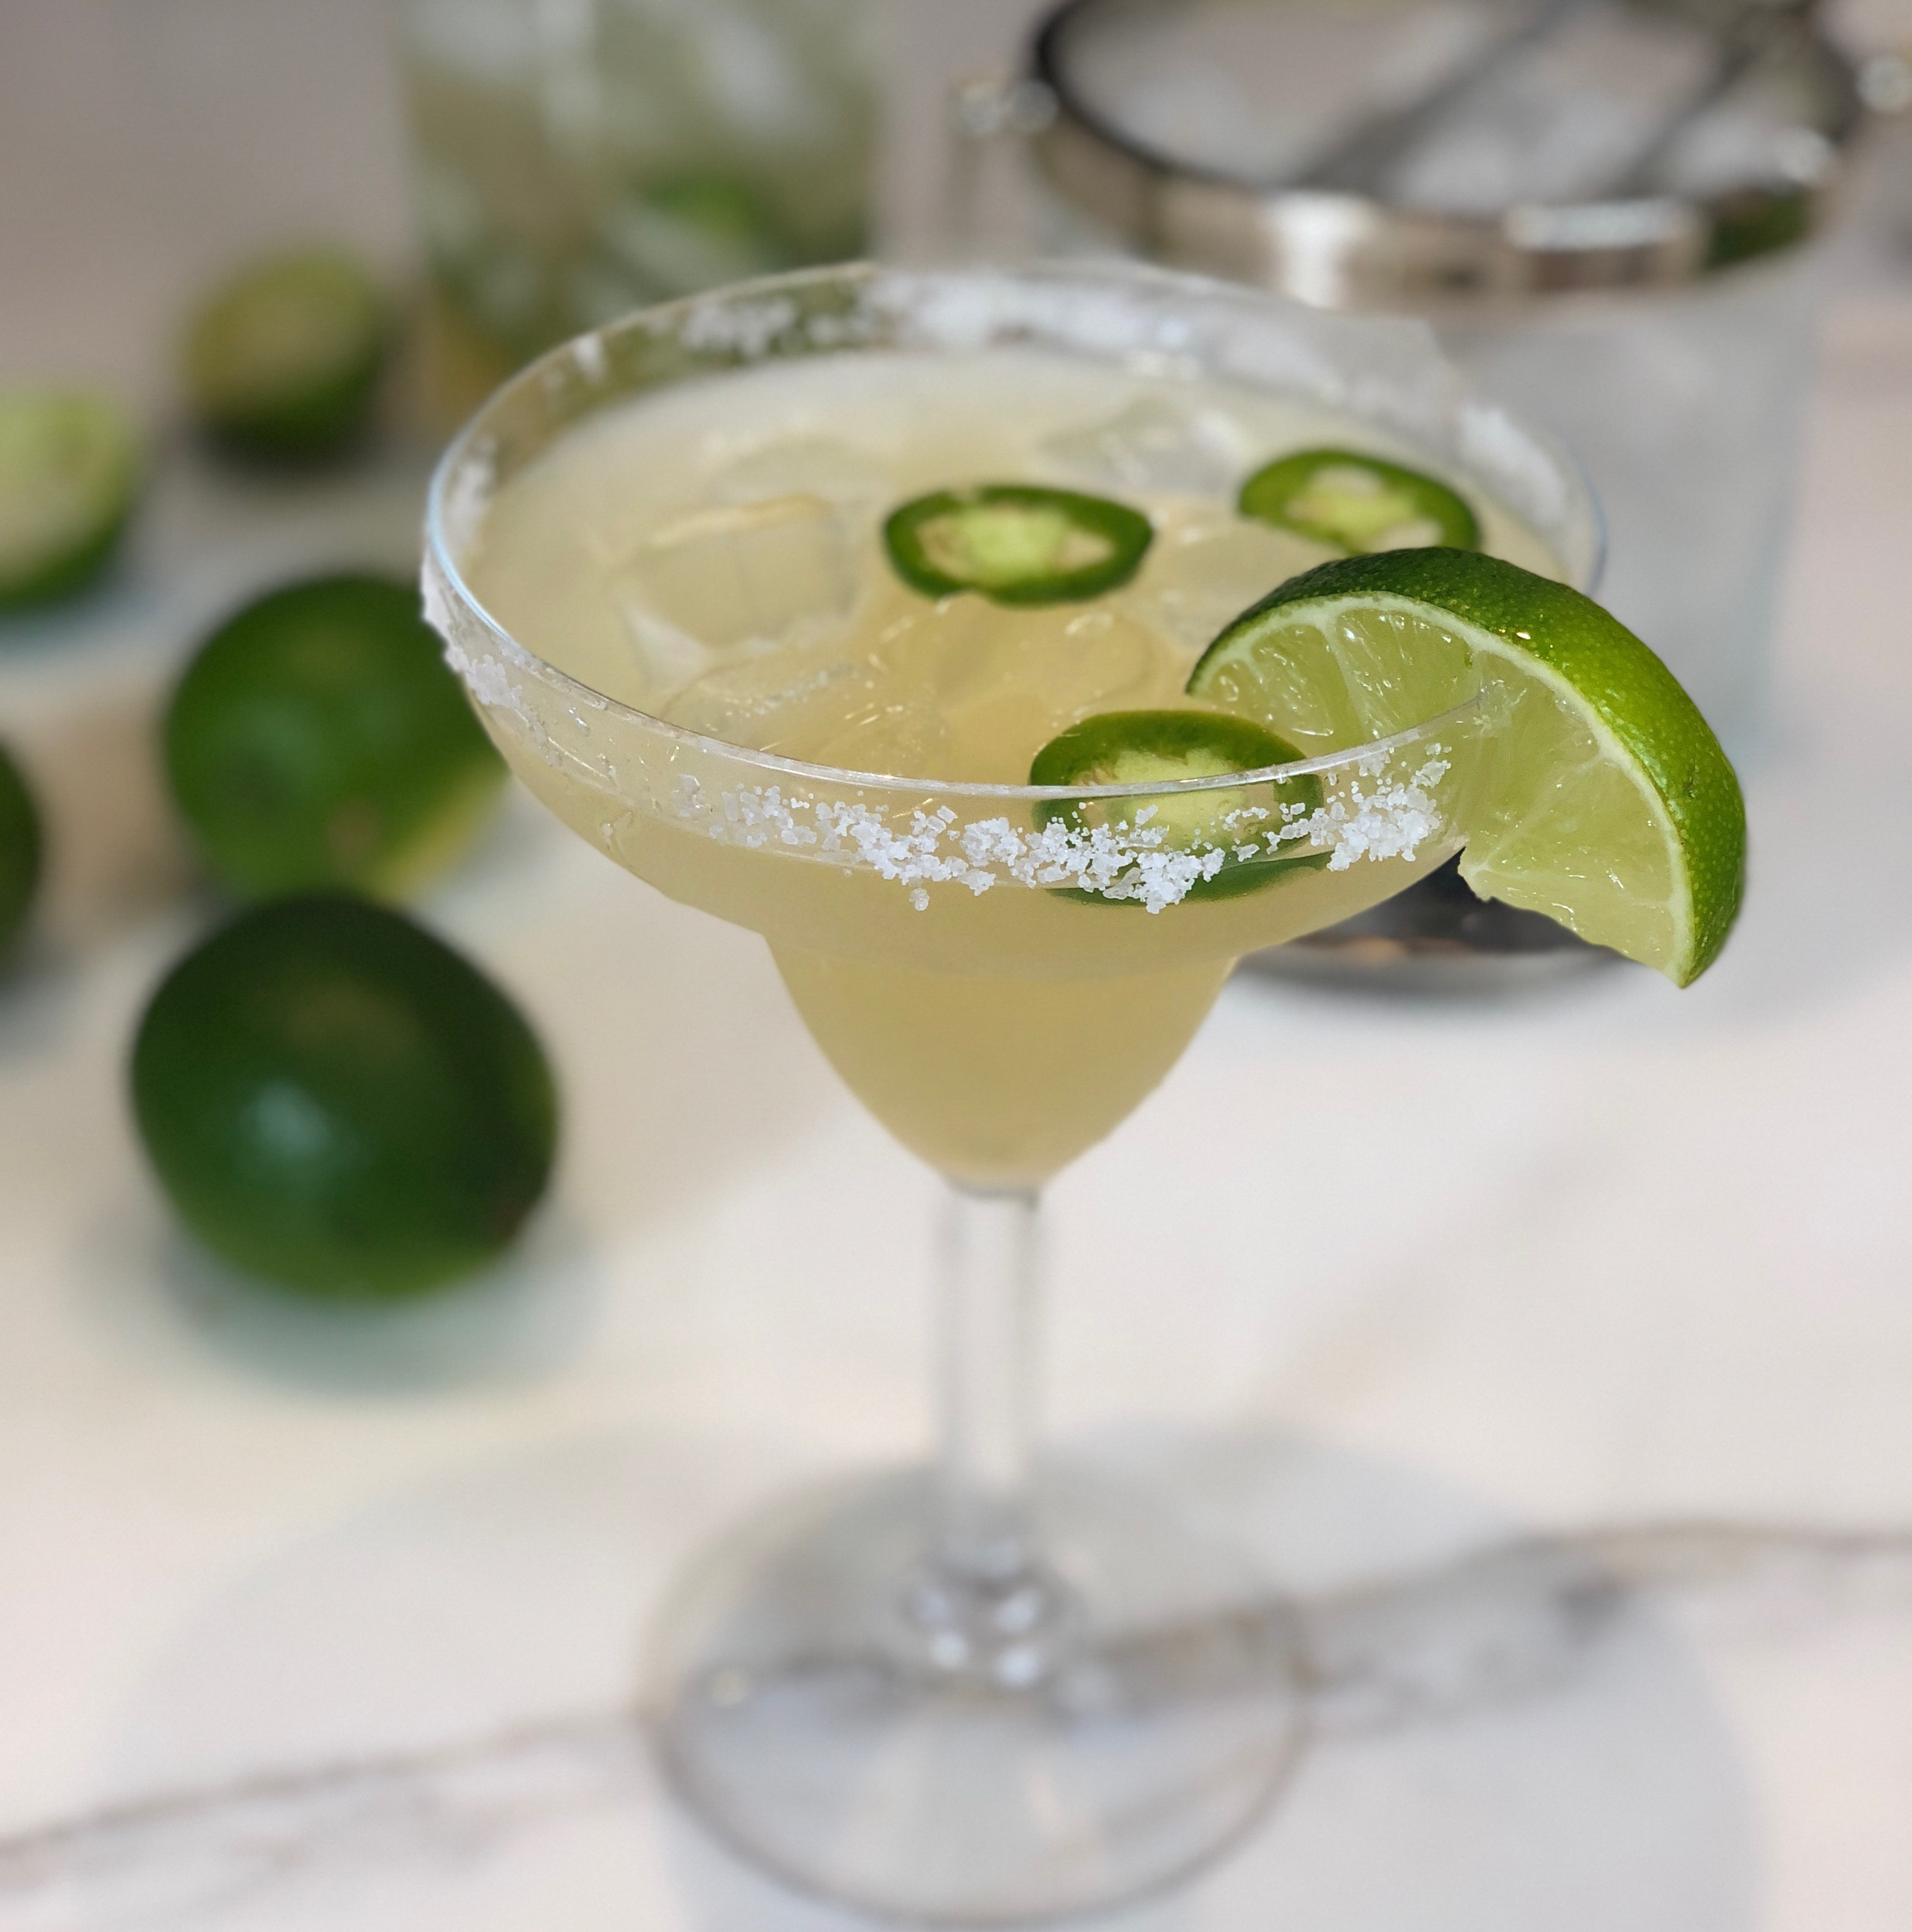 skinny cocktail, skinny margarita, margarita, low calorie cocktail